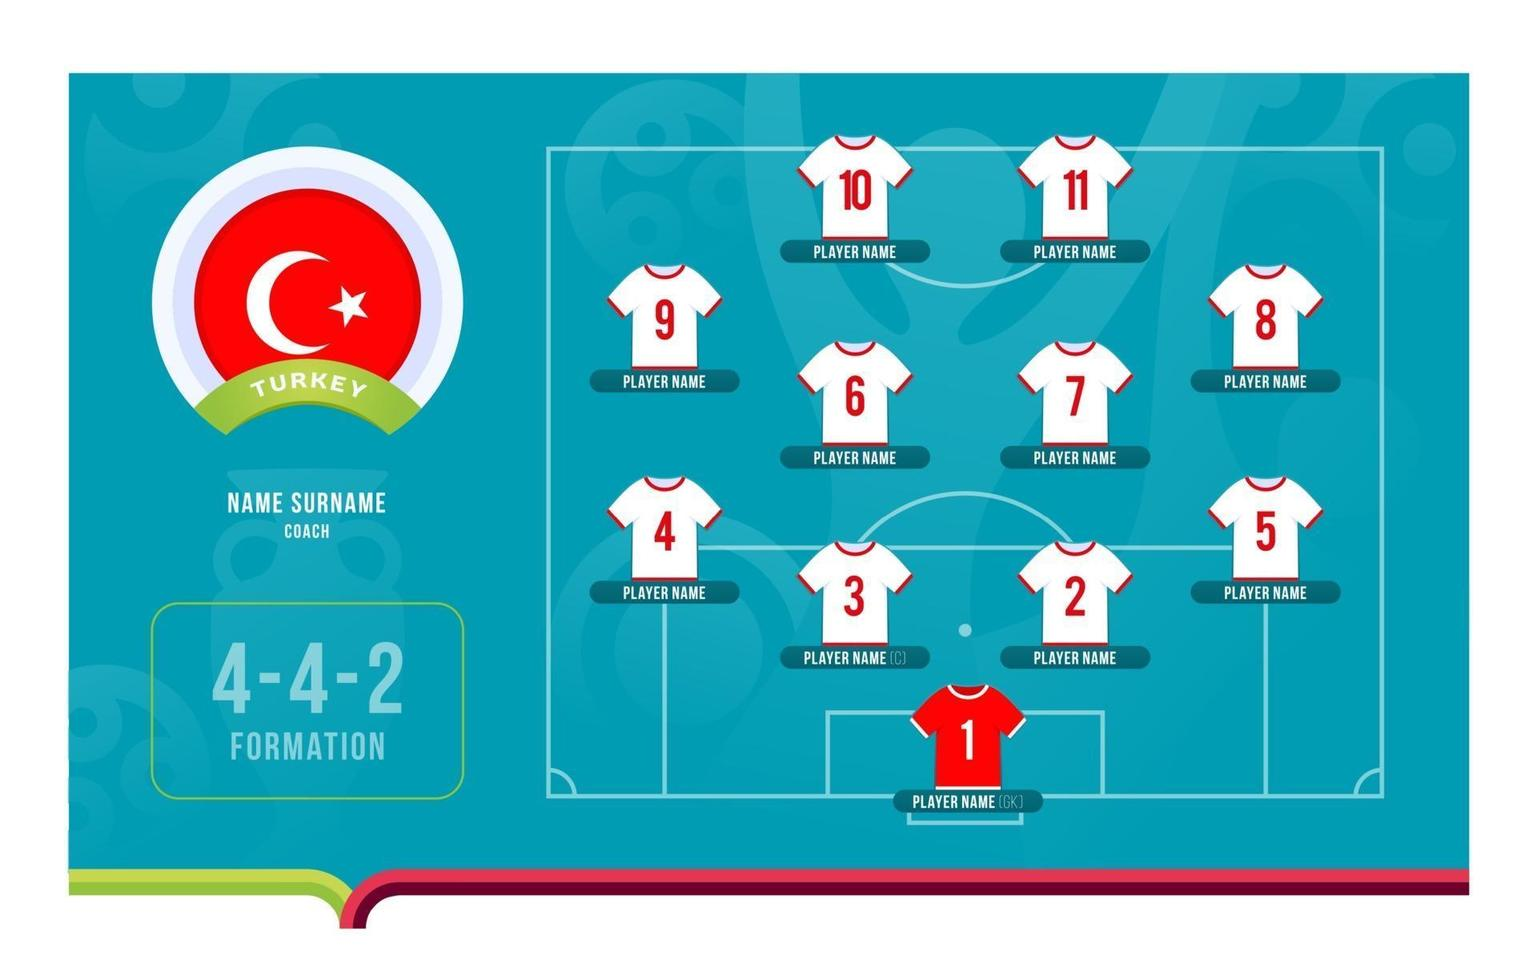 Turkey line-up Football tournament final stage vector illustration